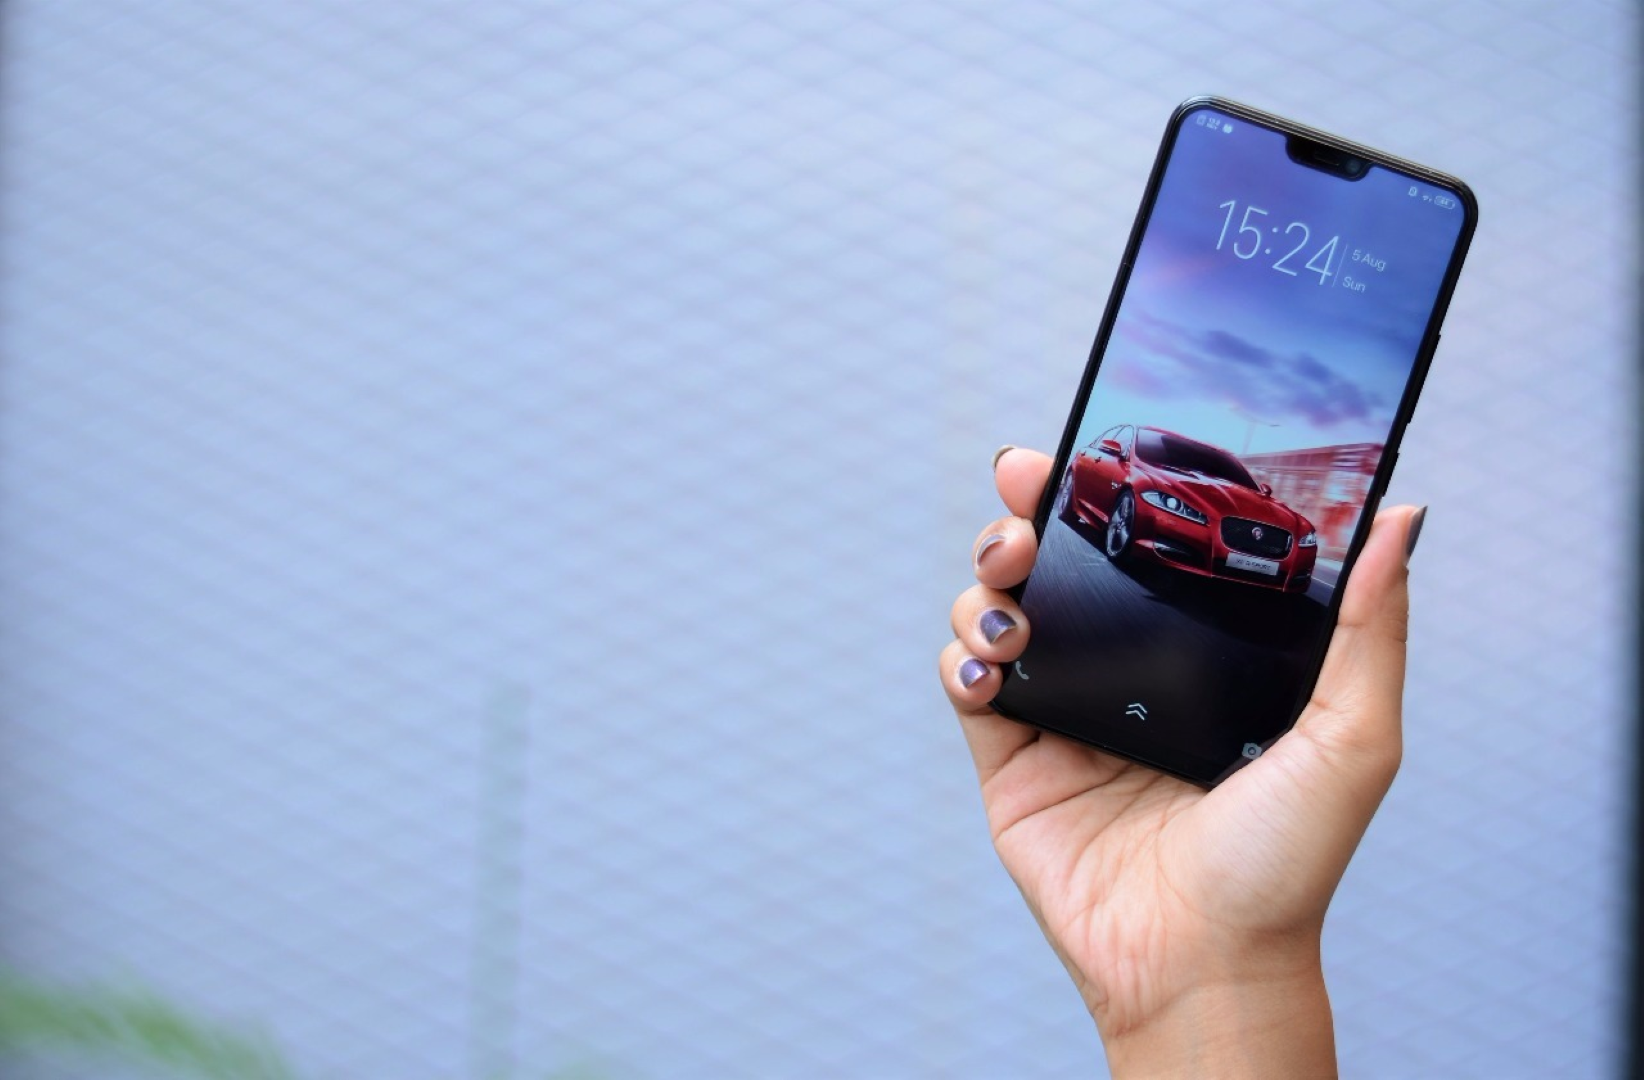 Vivo V9 6GB (Large)